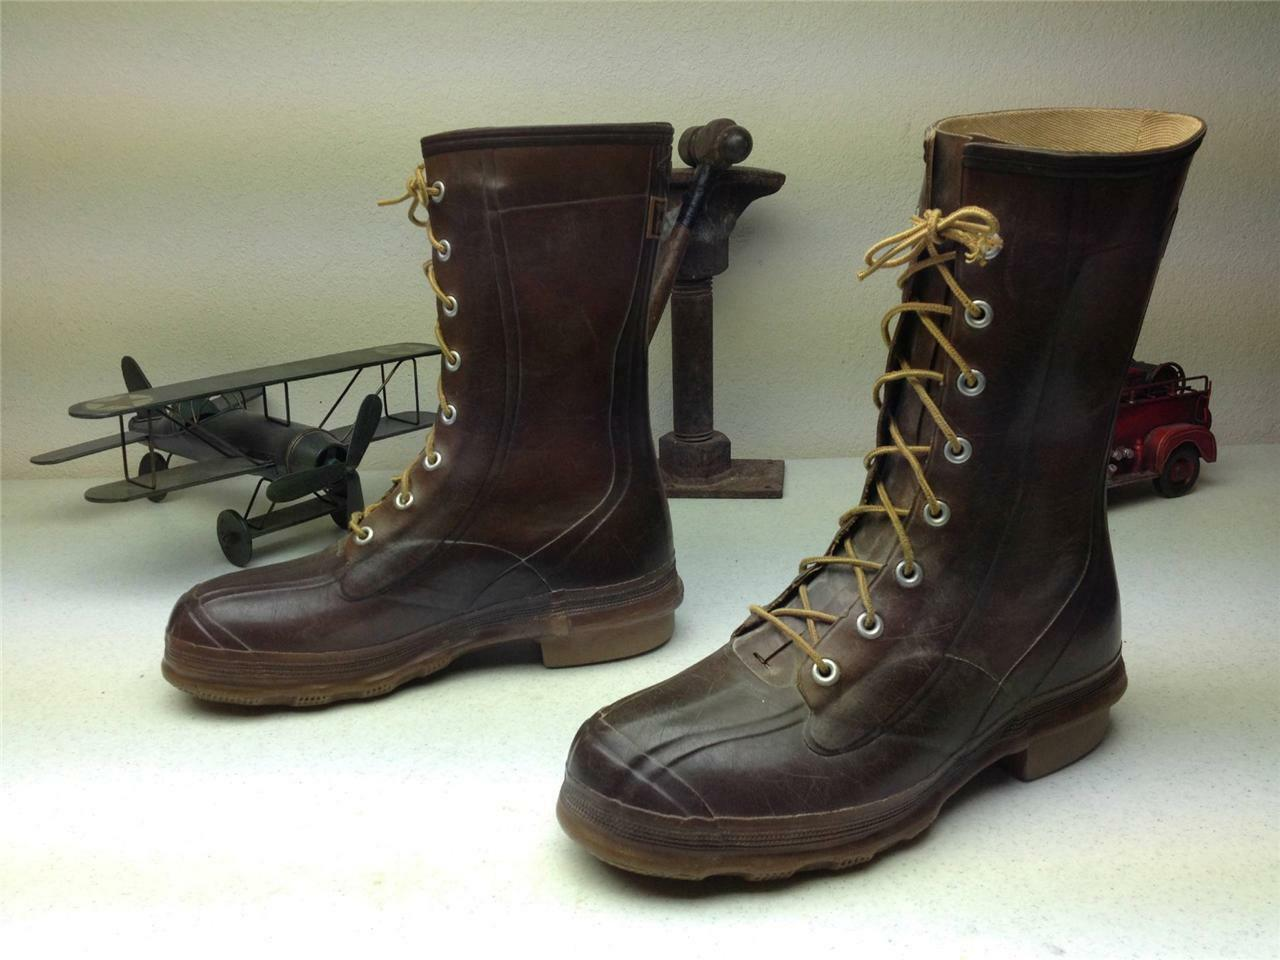 VINTAGE MADE IN USA DISTRESSED BROWN BALL BAND RAIN BOOTS SIZE 10-10.5